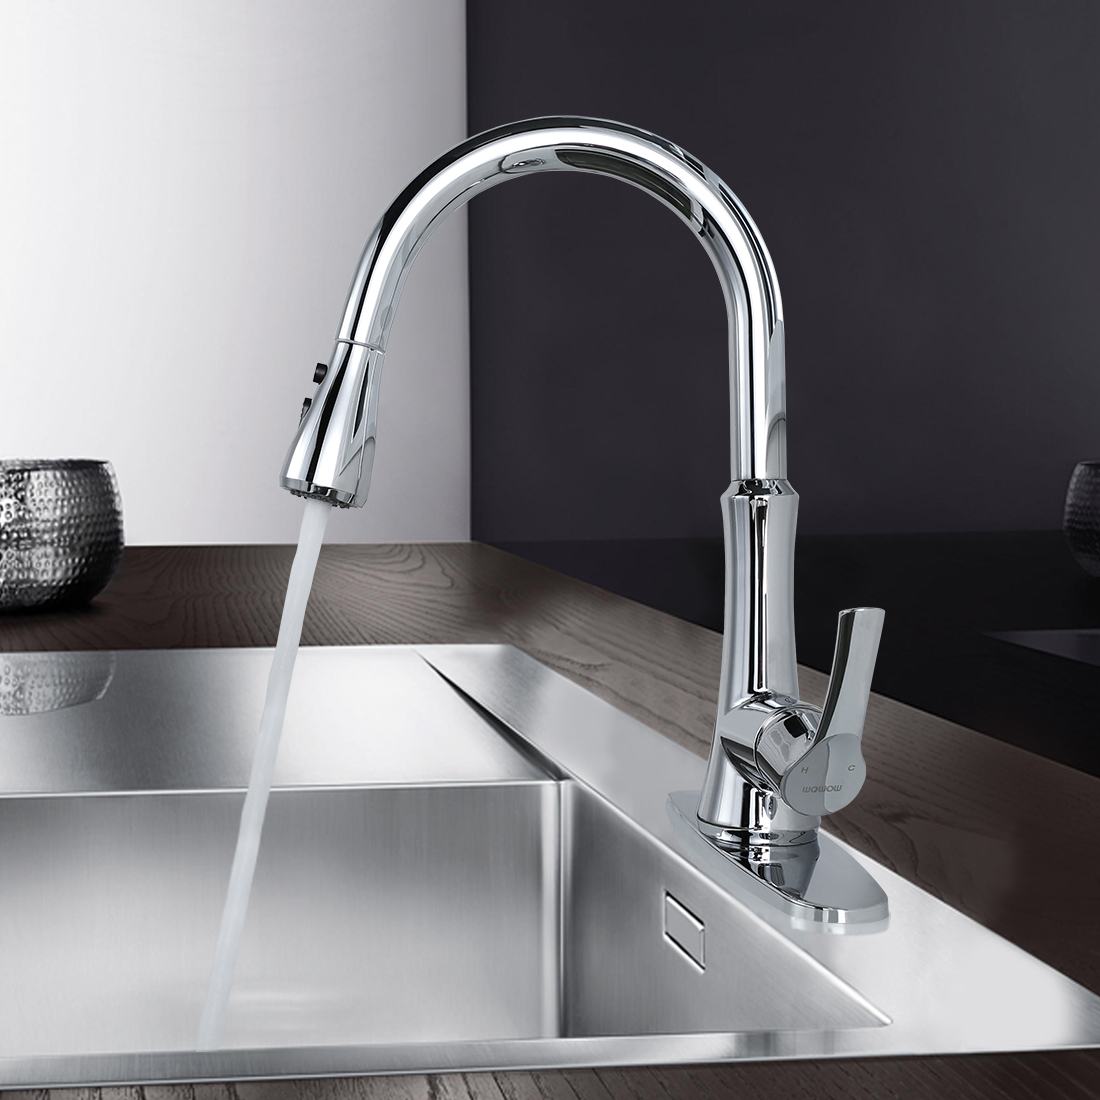 Huayi won the first batch of certified enterprises for the implementation of the new national standard for faucets